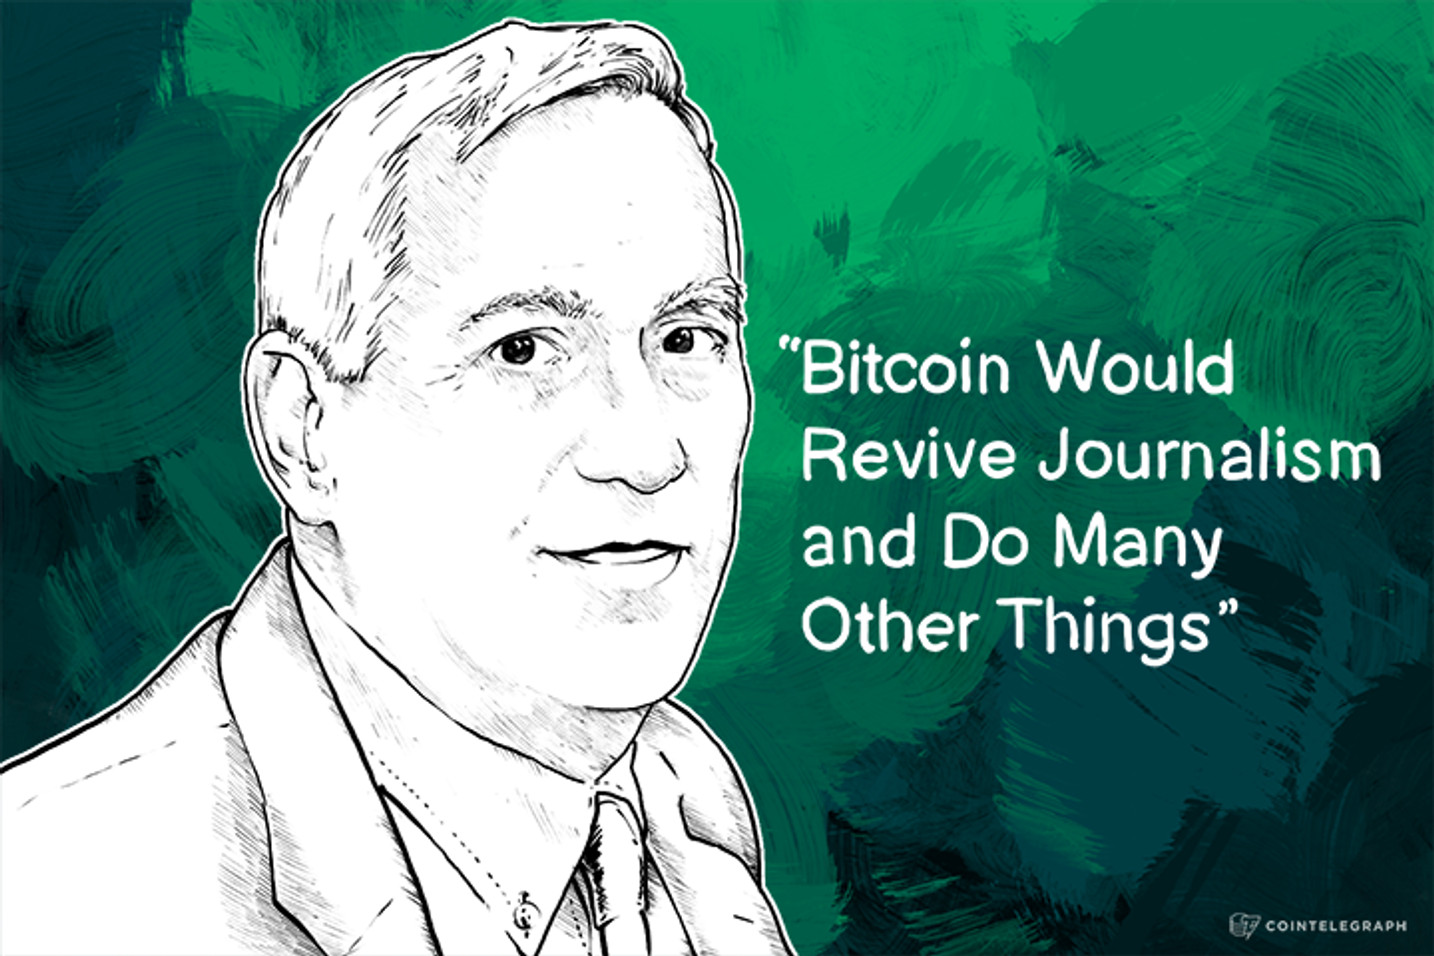 Author Walter Isaacson: 'Bitcoin Would Revive Journalism and Do Many Other Things'